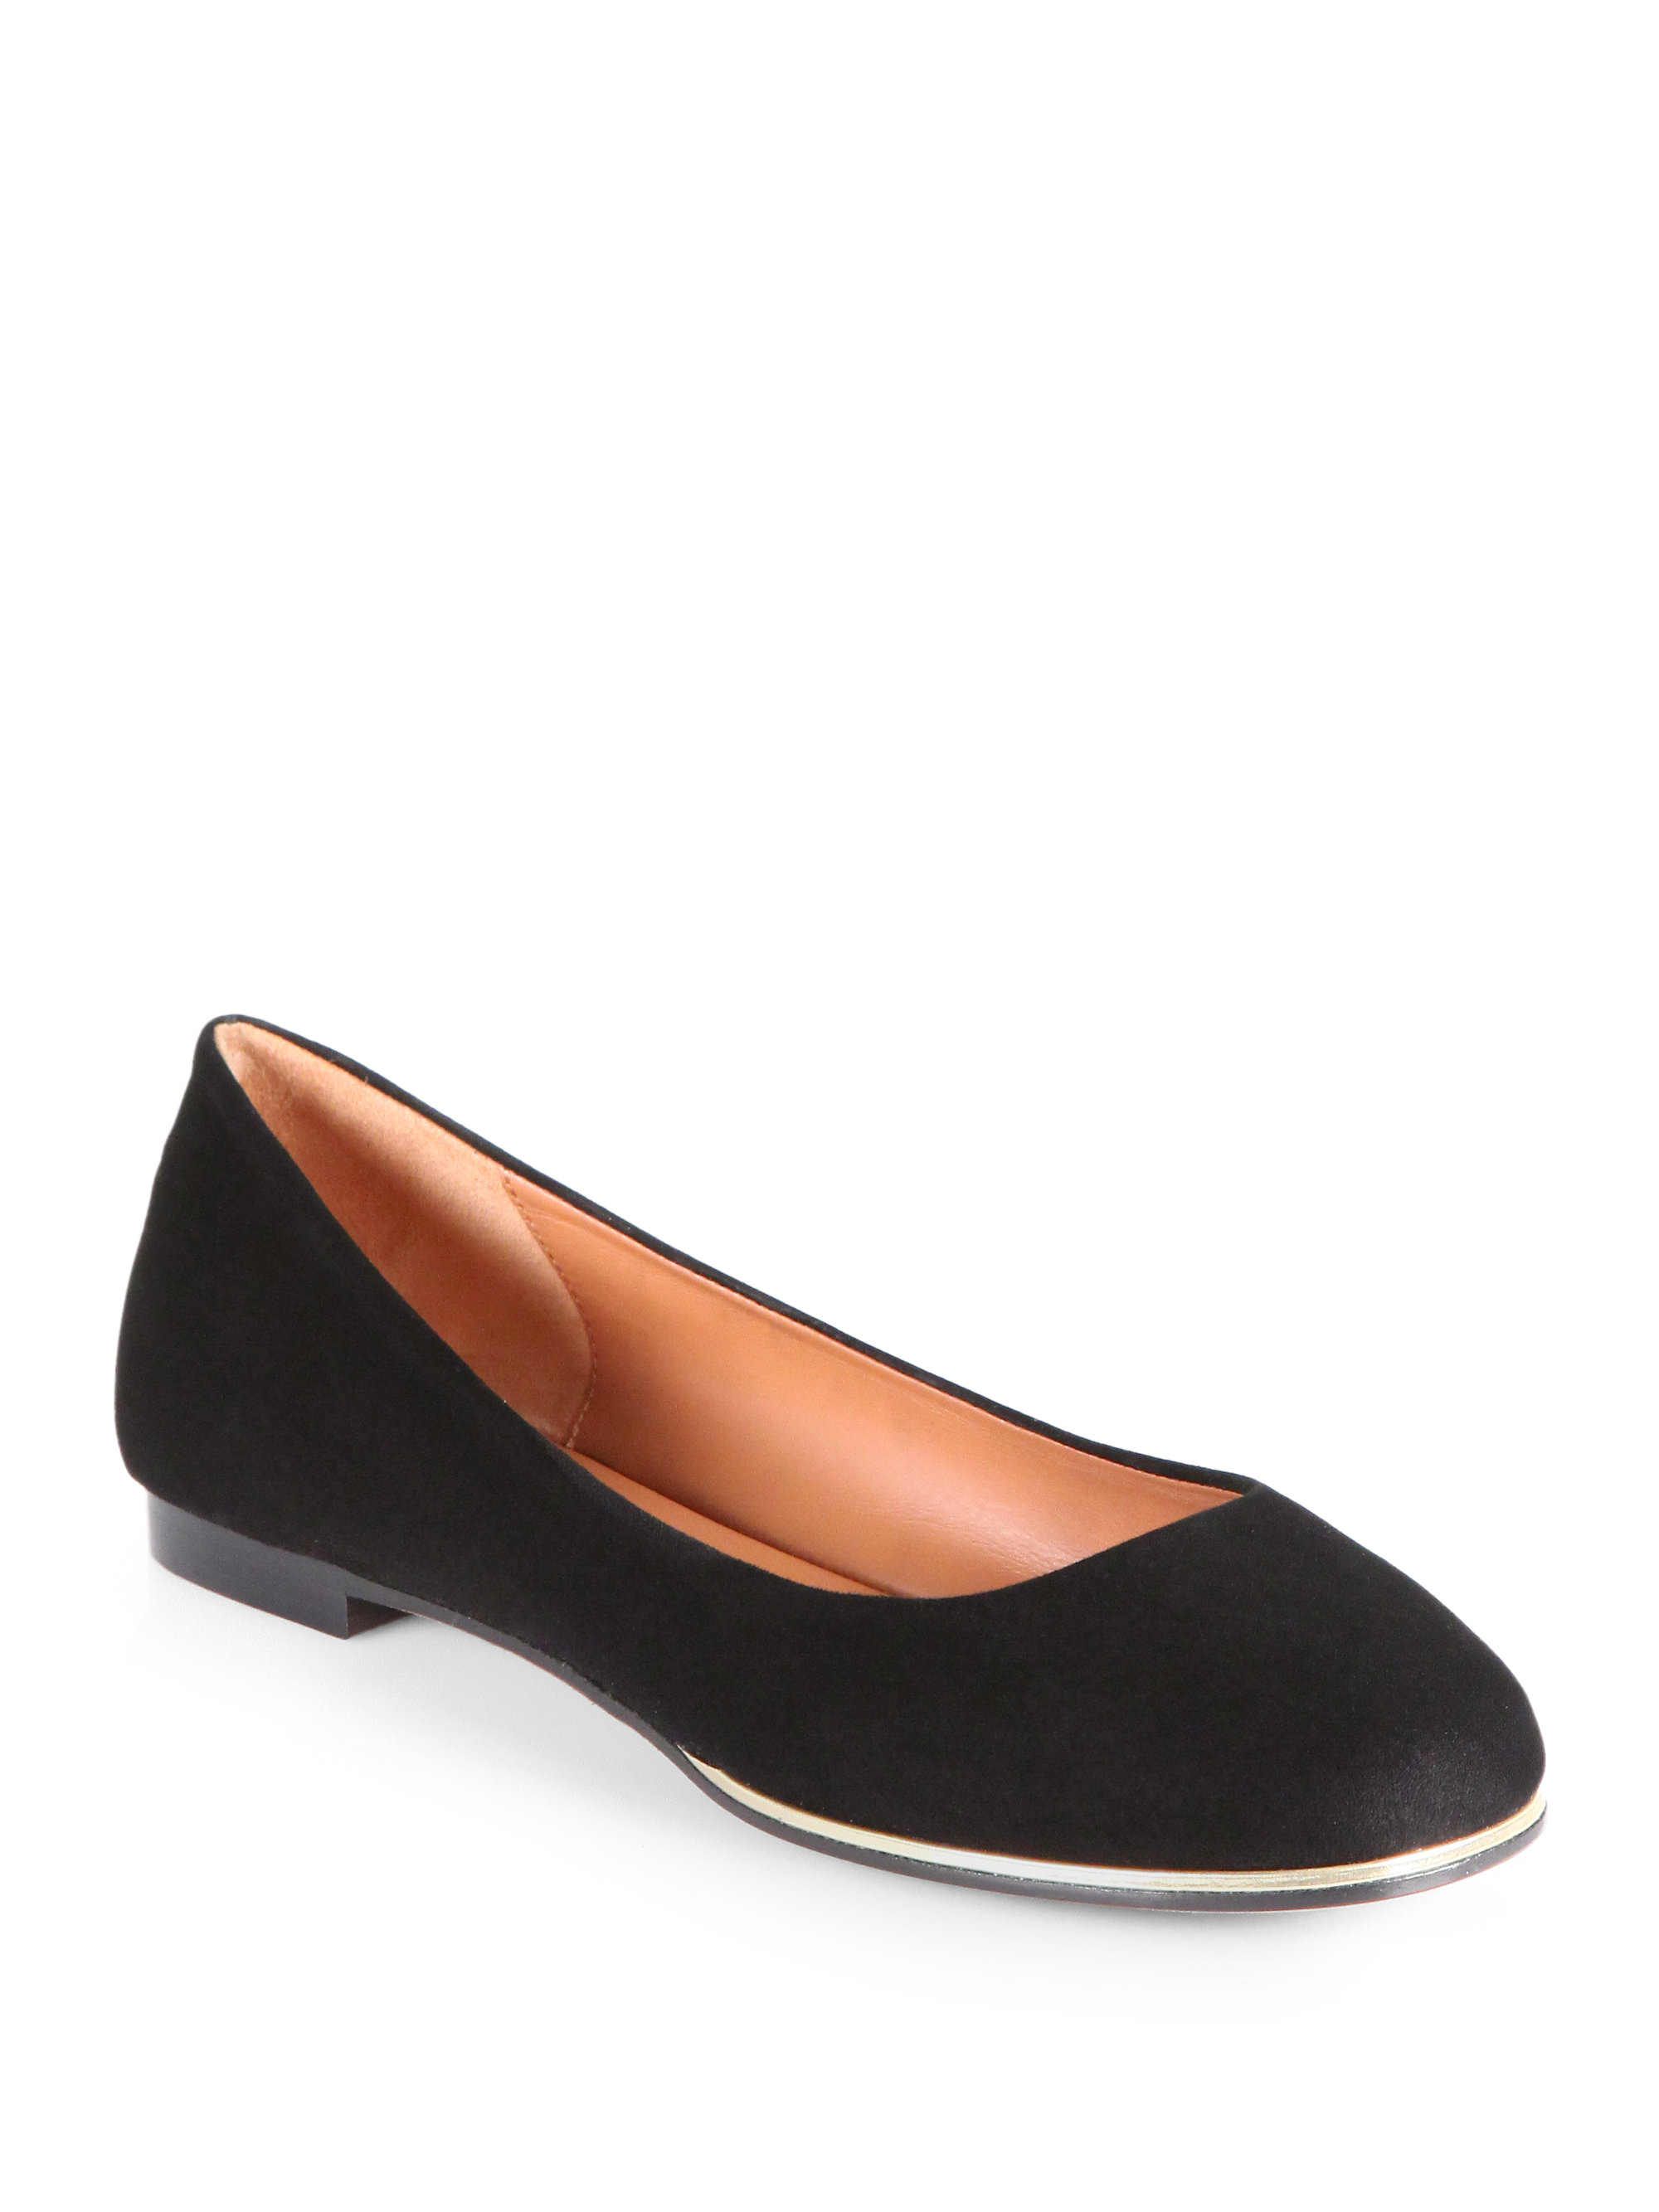 Women's Black Metallic Suede Ballet Flats $ $ 95 + $ shipping From Saks OFF 5TH Price last checked 13 hours ago Product prices and availability are accurate as of the date/time indicated and are subject to 10mins.ml: $